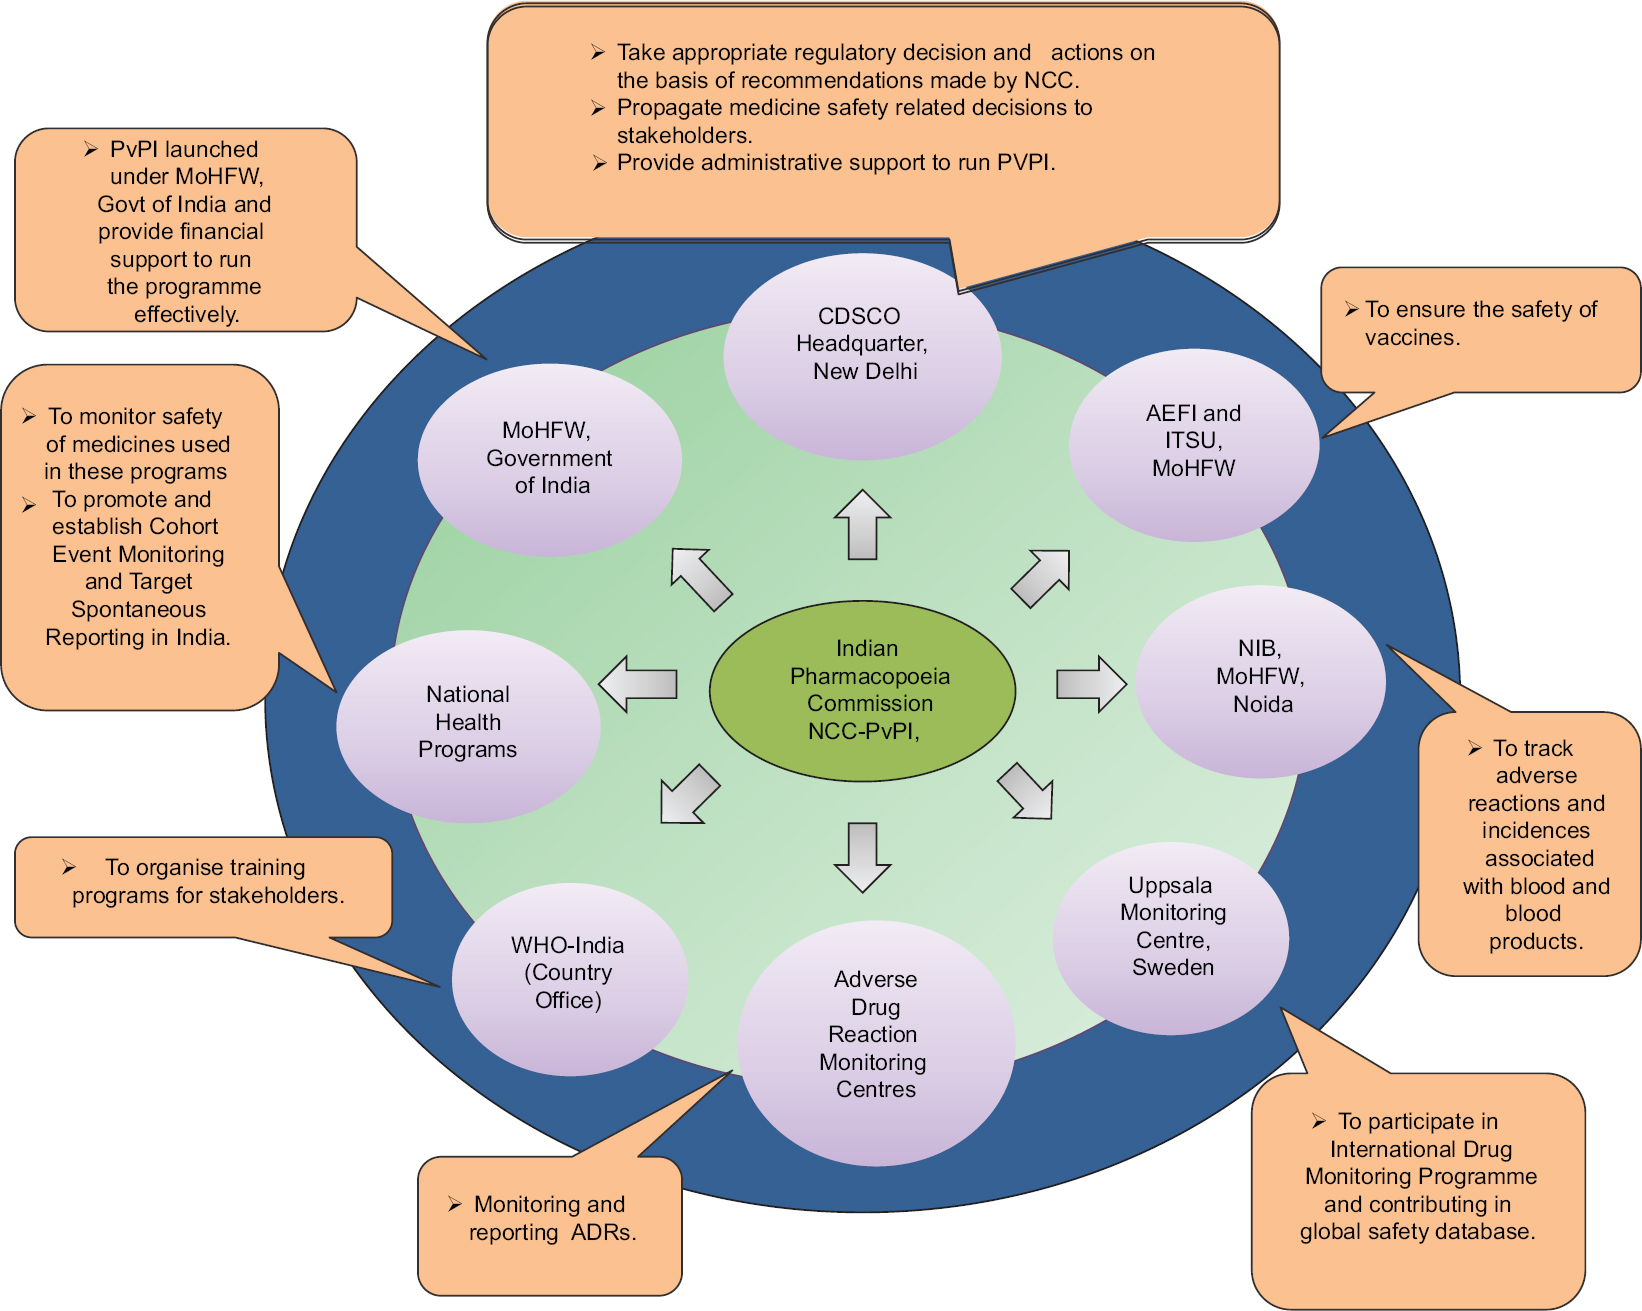 Figure 3: Coordination of Indian Pharmacopoeia Commission with other organizations